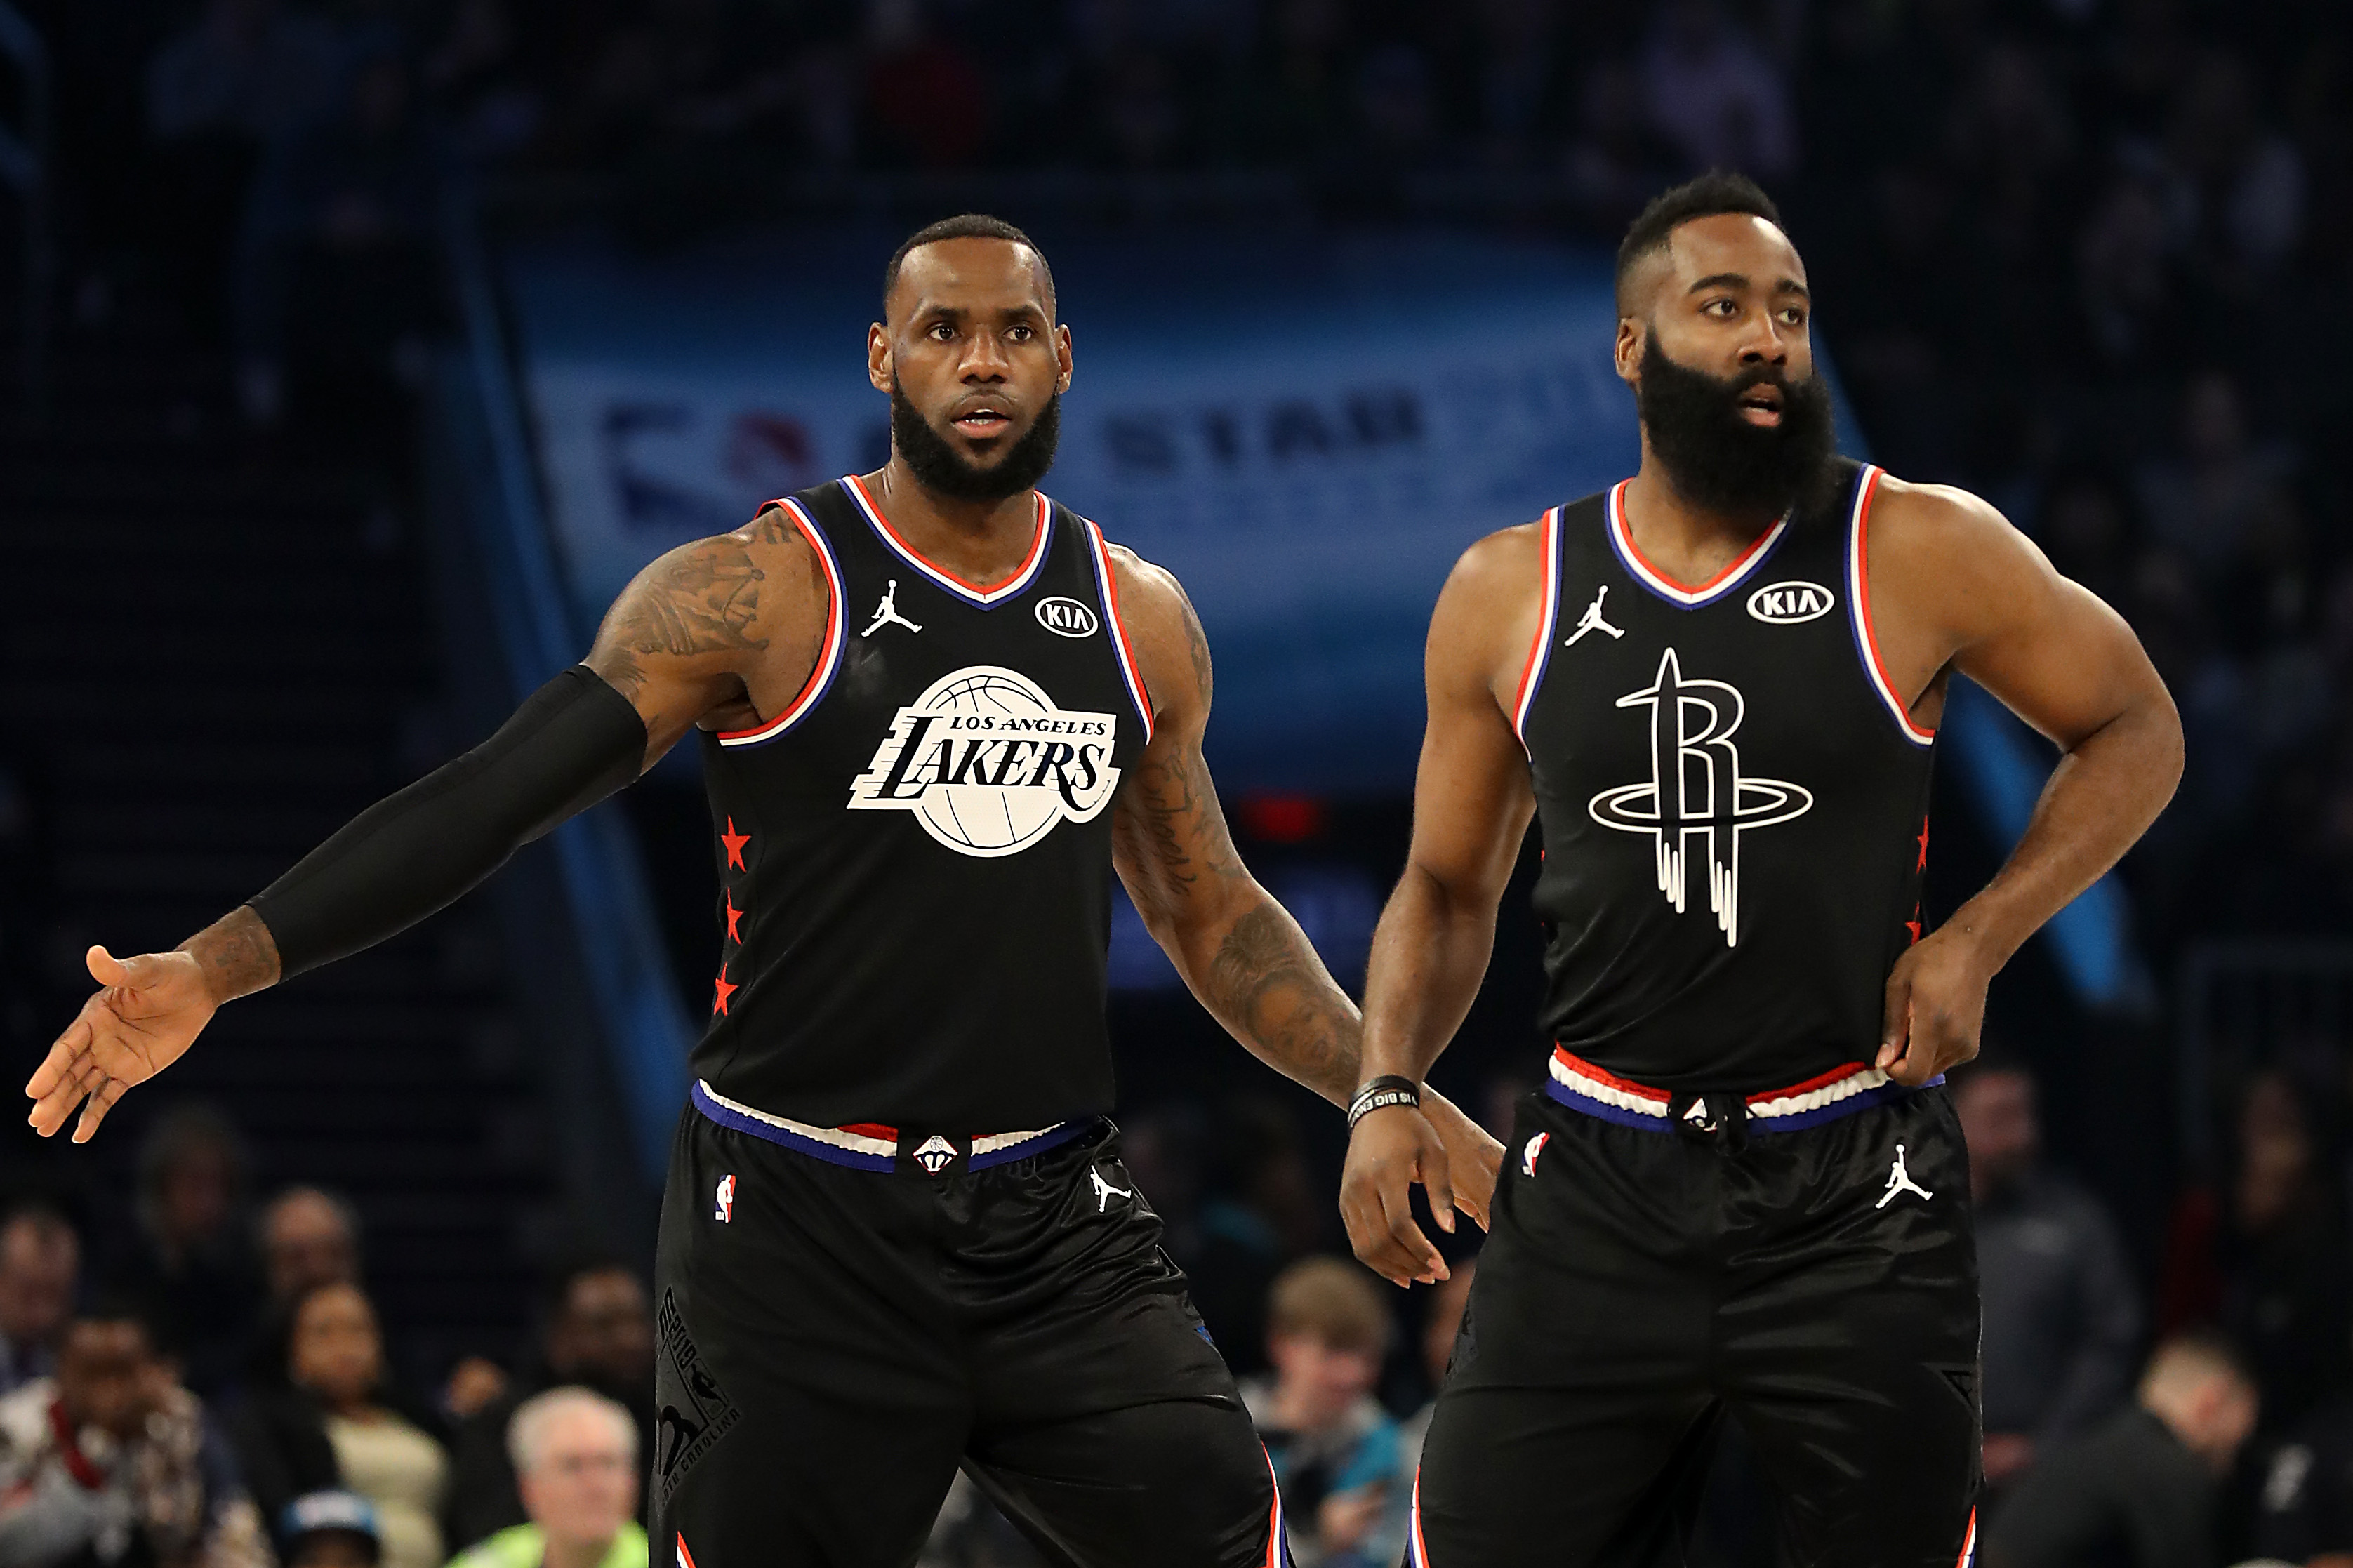 watch nba all star game 2020